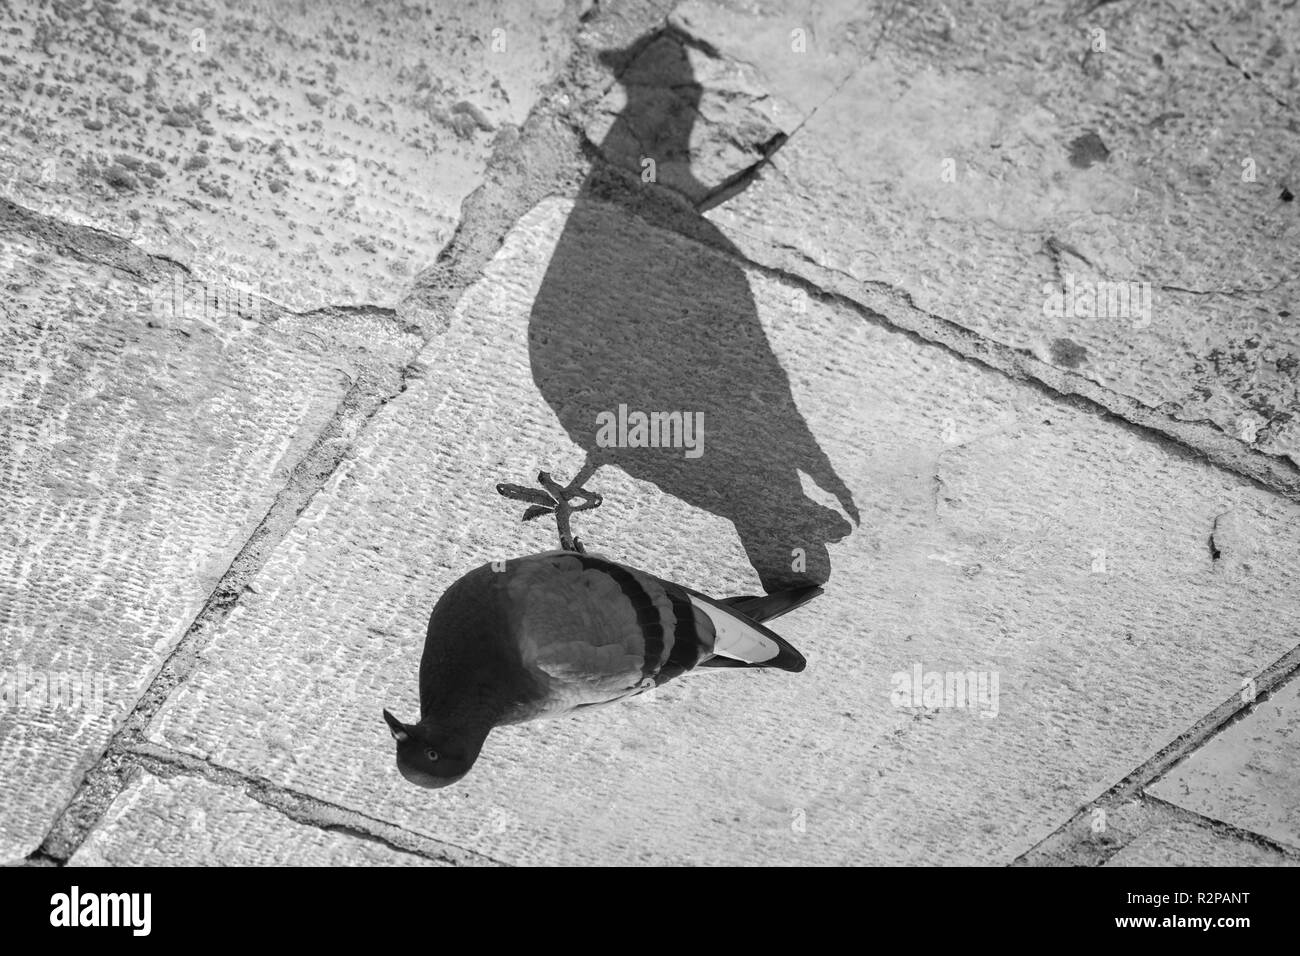 Photo of a city pigeon and its much larger shadow on stone floor, turned by 180 degrees - Stock Image